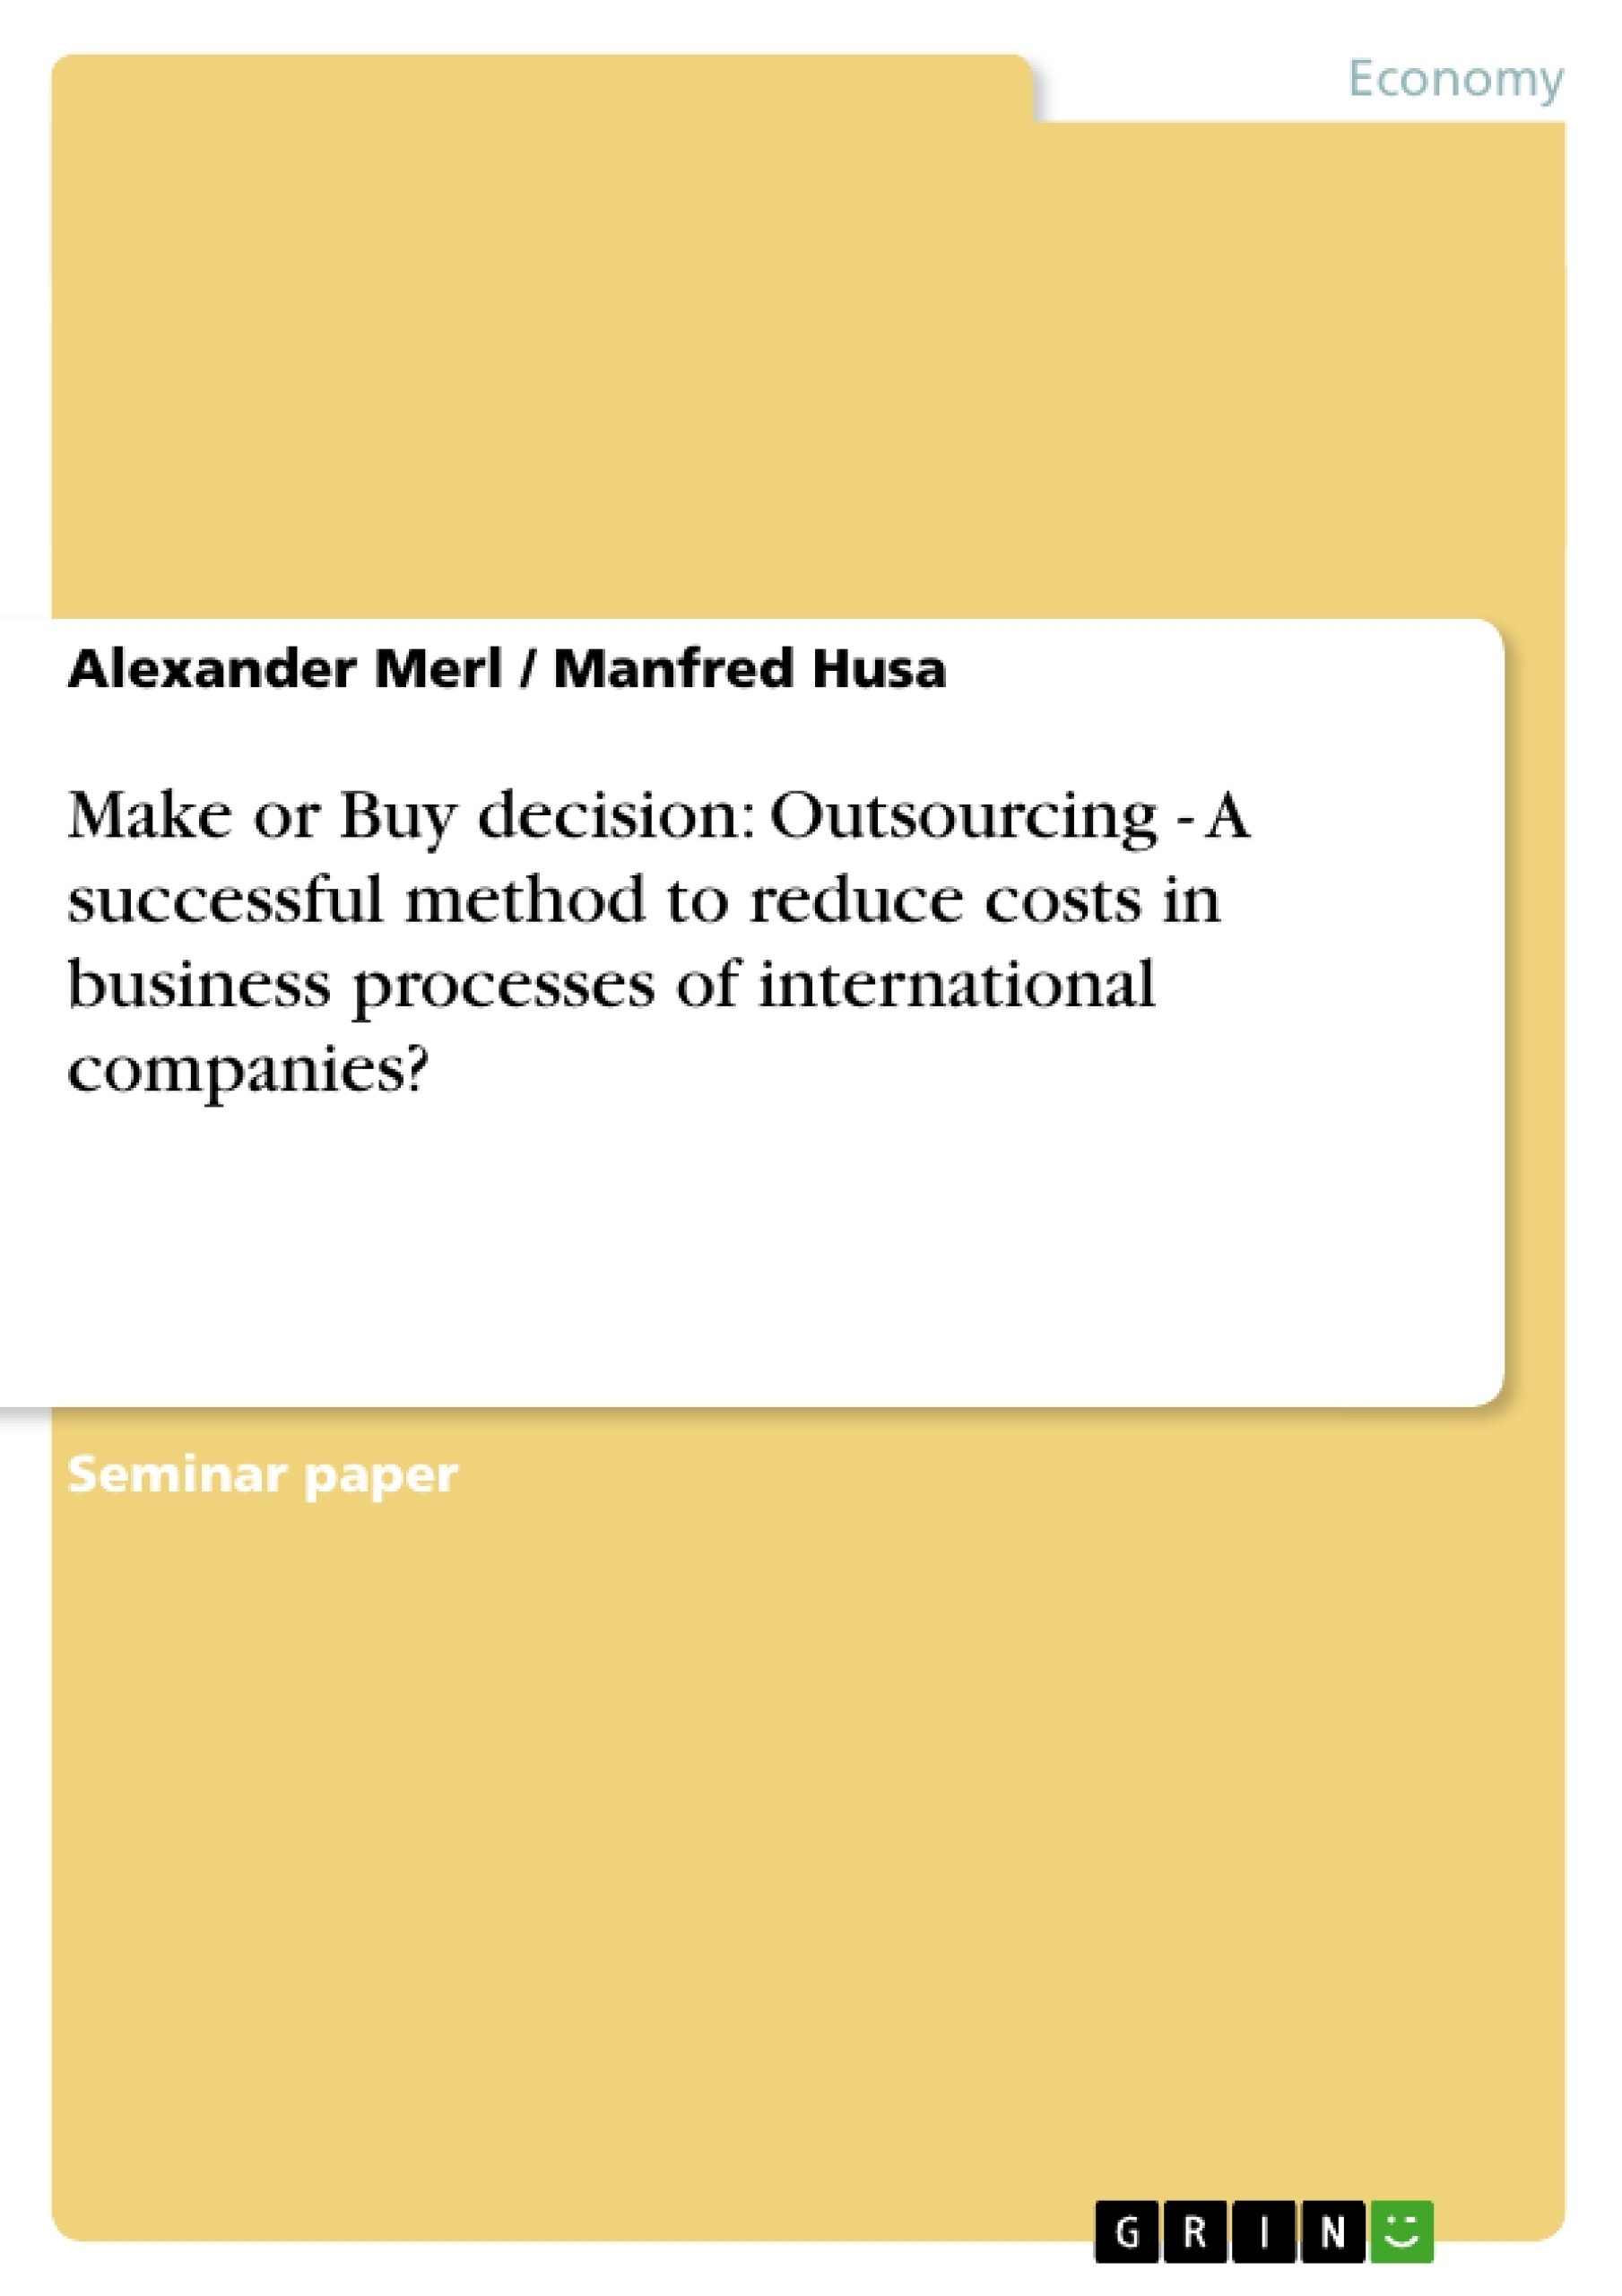 Title: Make or Buy decision: Outsourcing - A successful method to reduce costs in business processes of international companies?